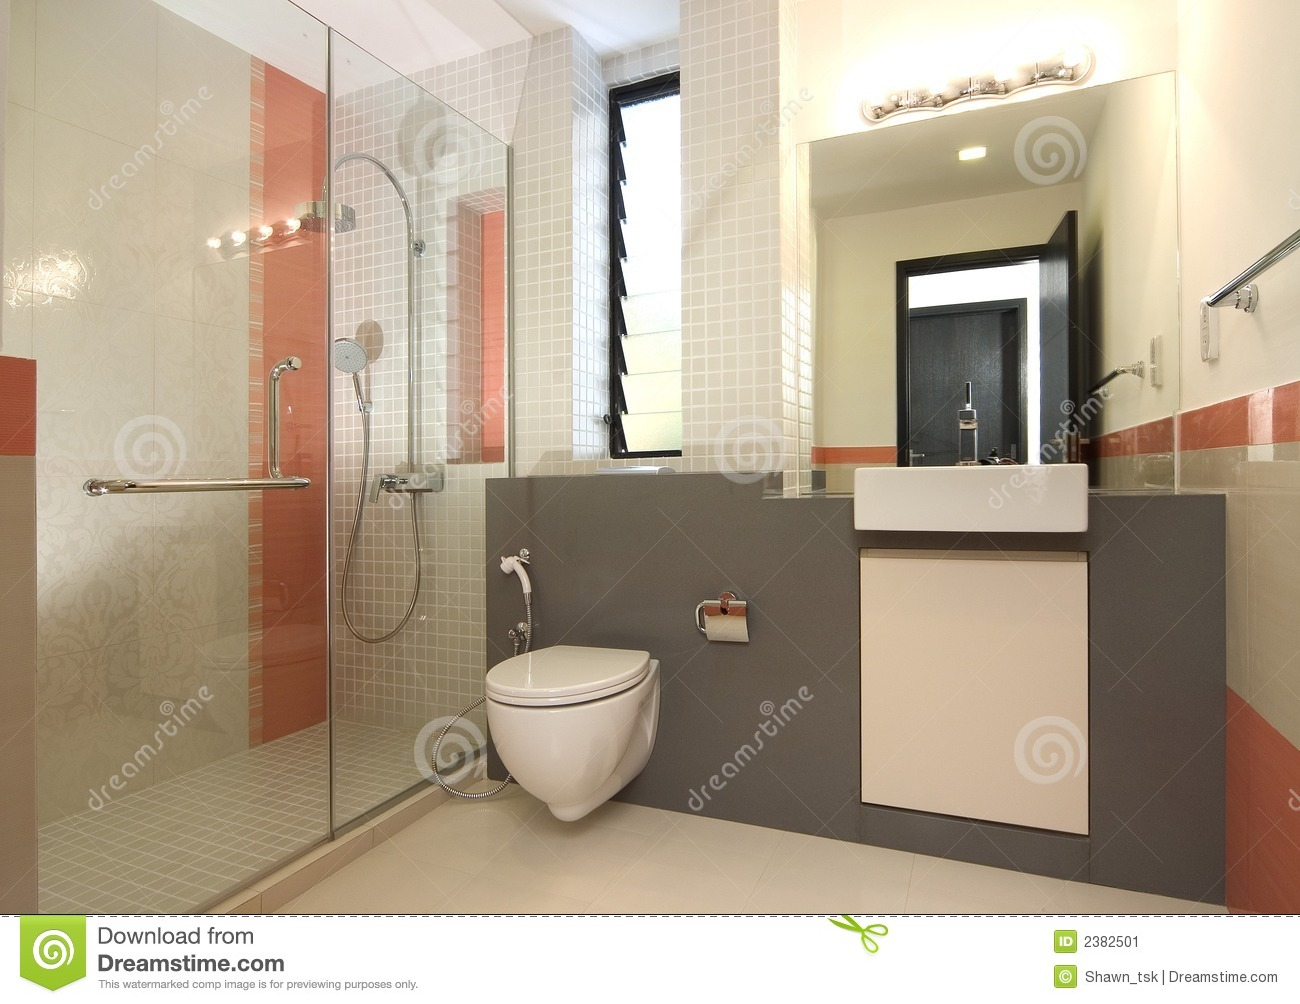 Interior design bathroom stock image image of light for Bathroom interior designs